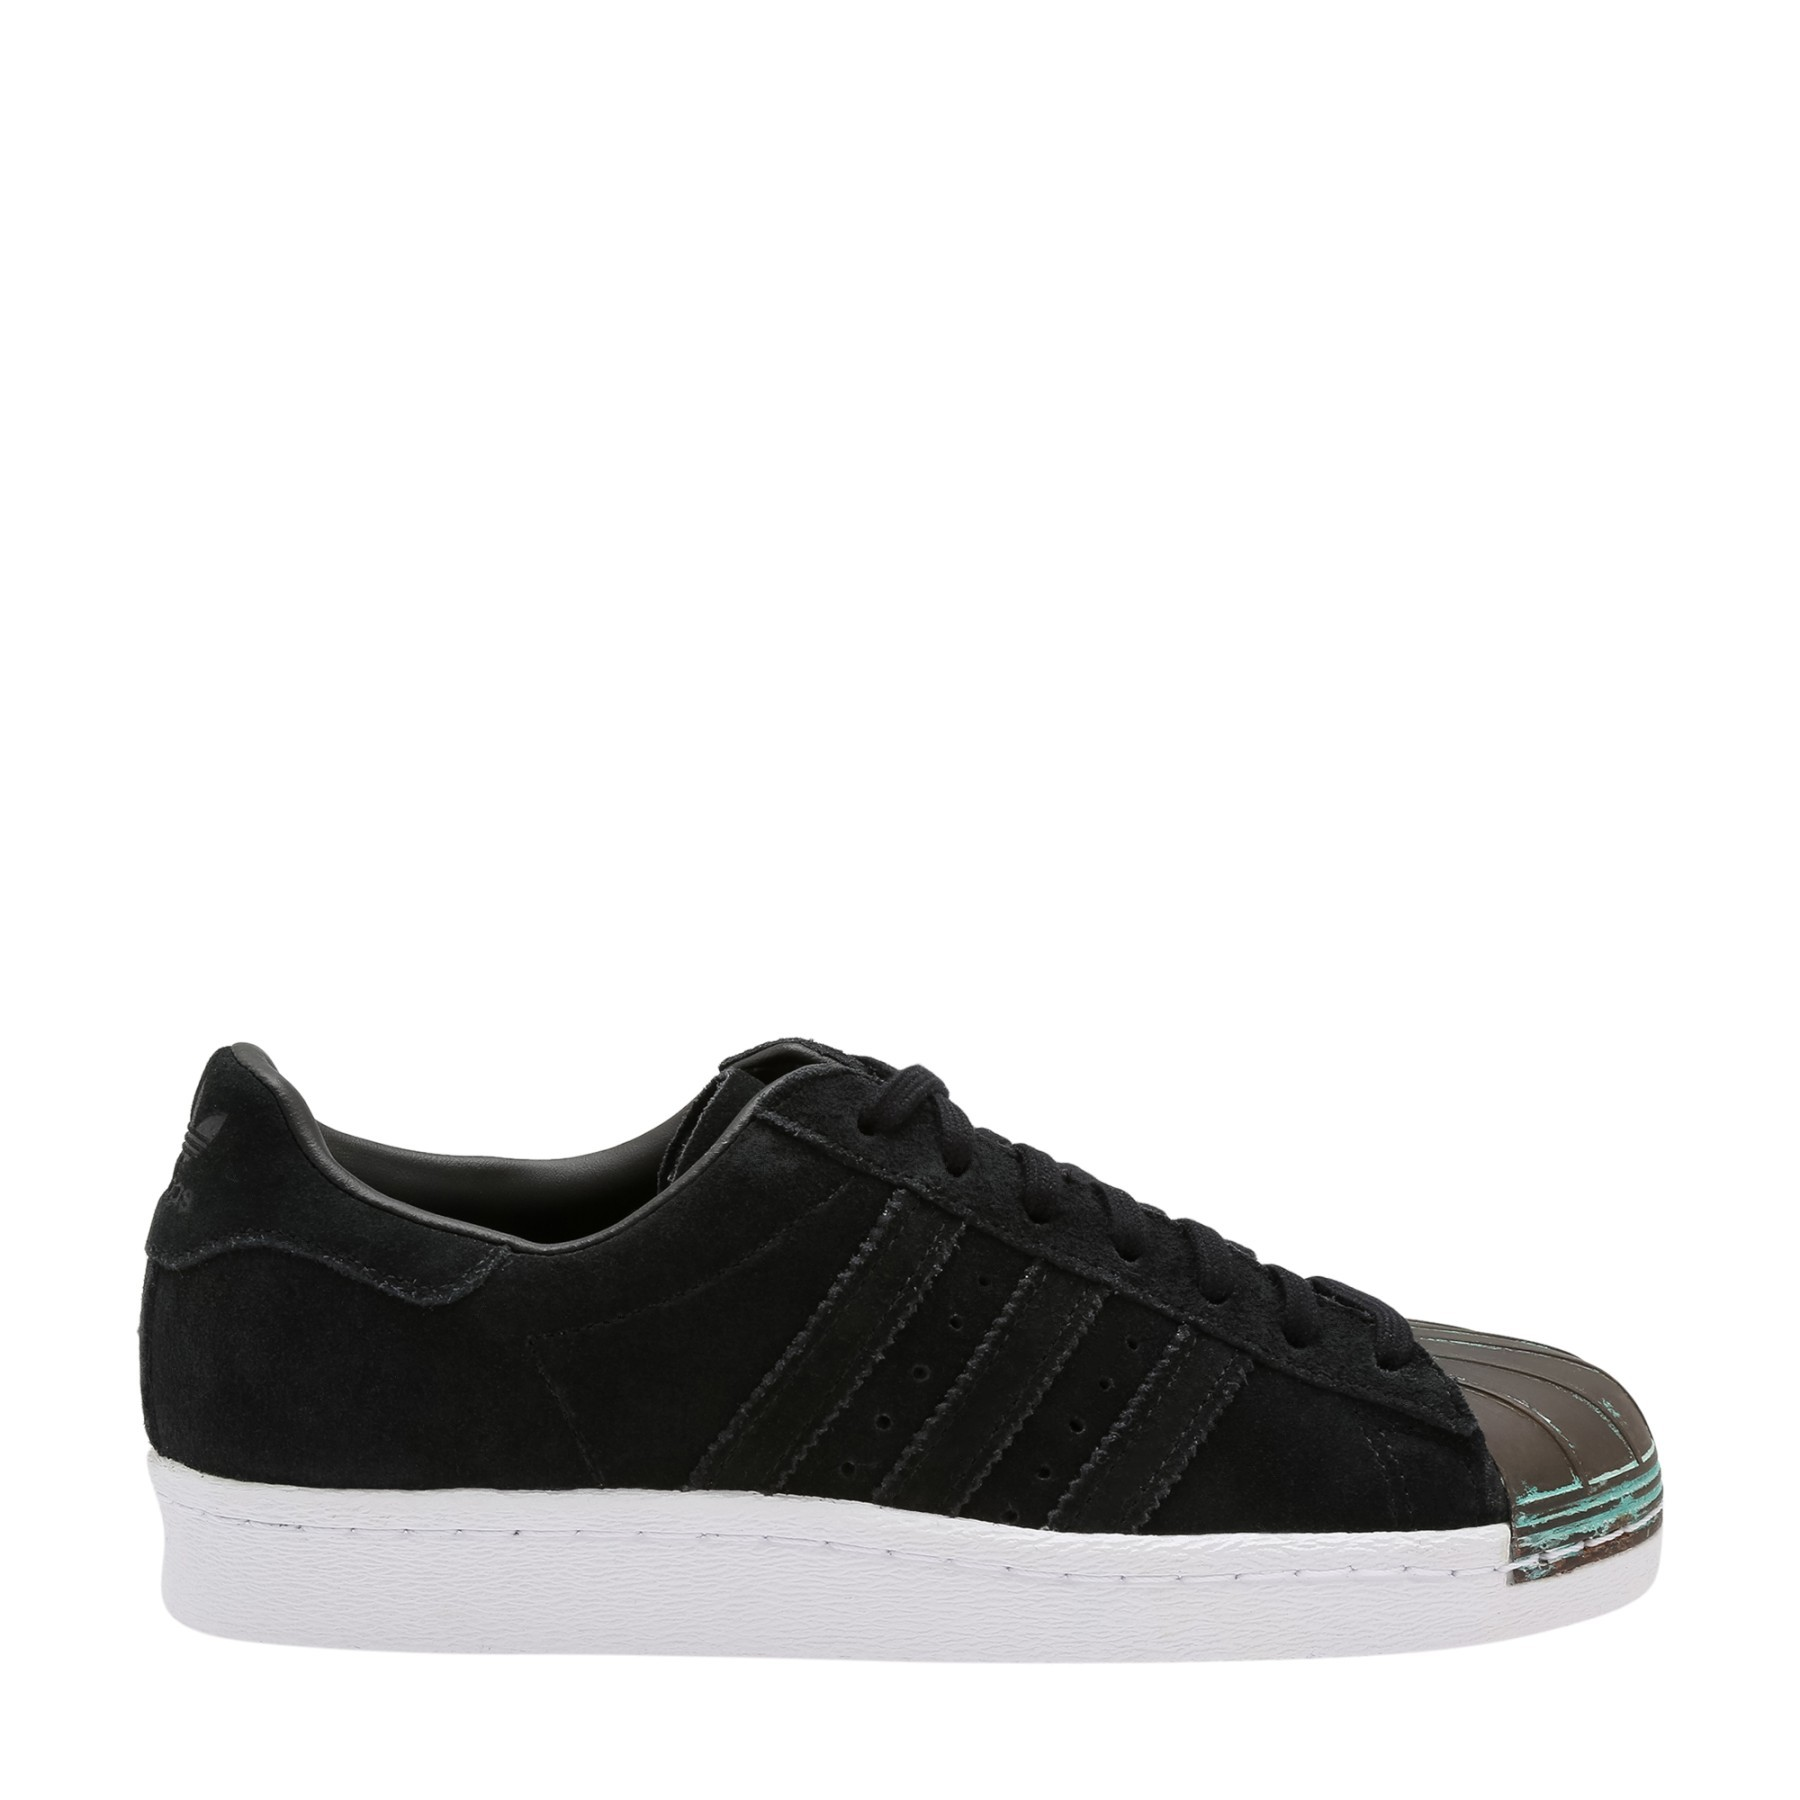 Scarpe donna sneakers ADIDAS SUPERSTAR 80S MT in camoscio nero CQ3106